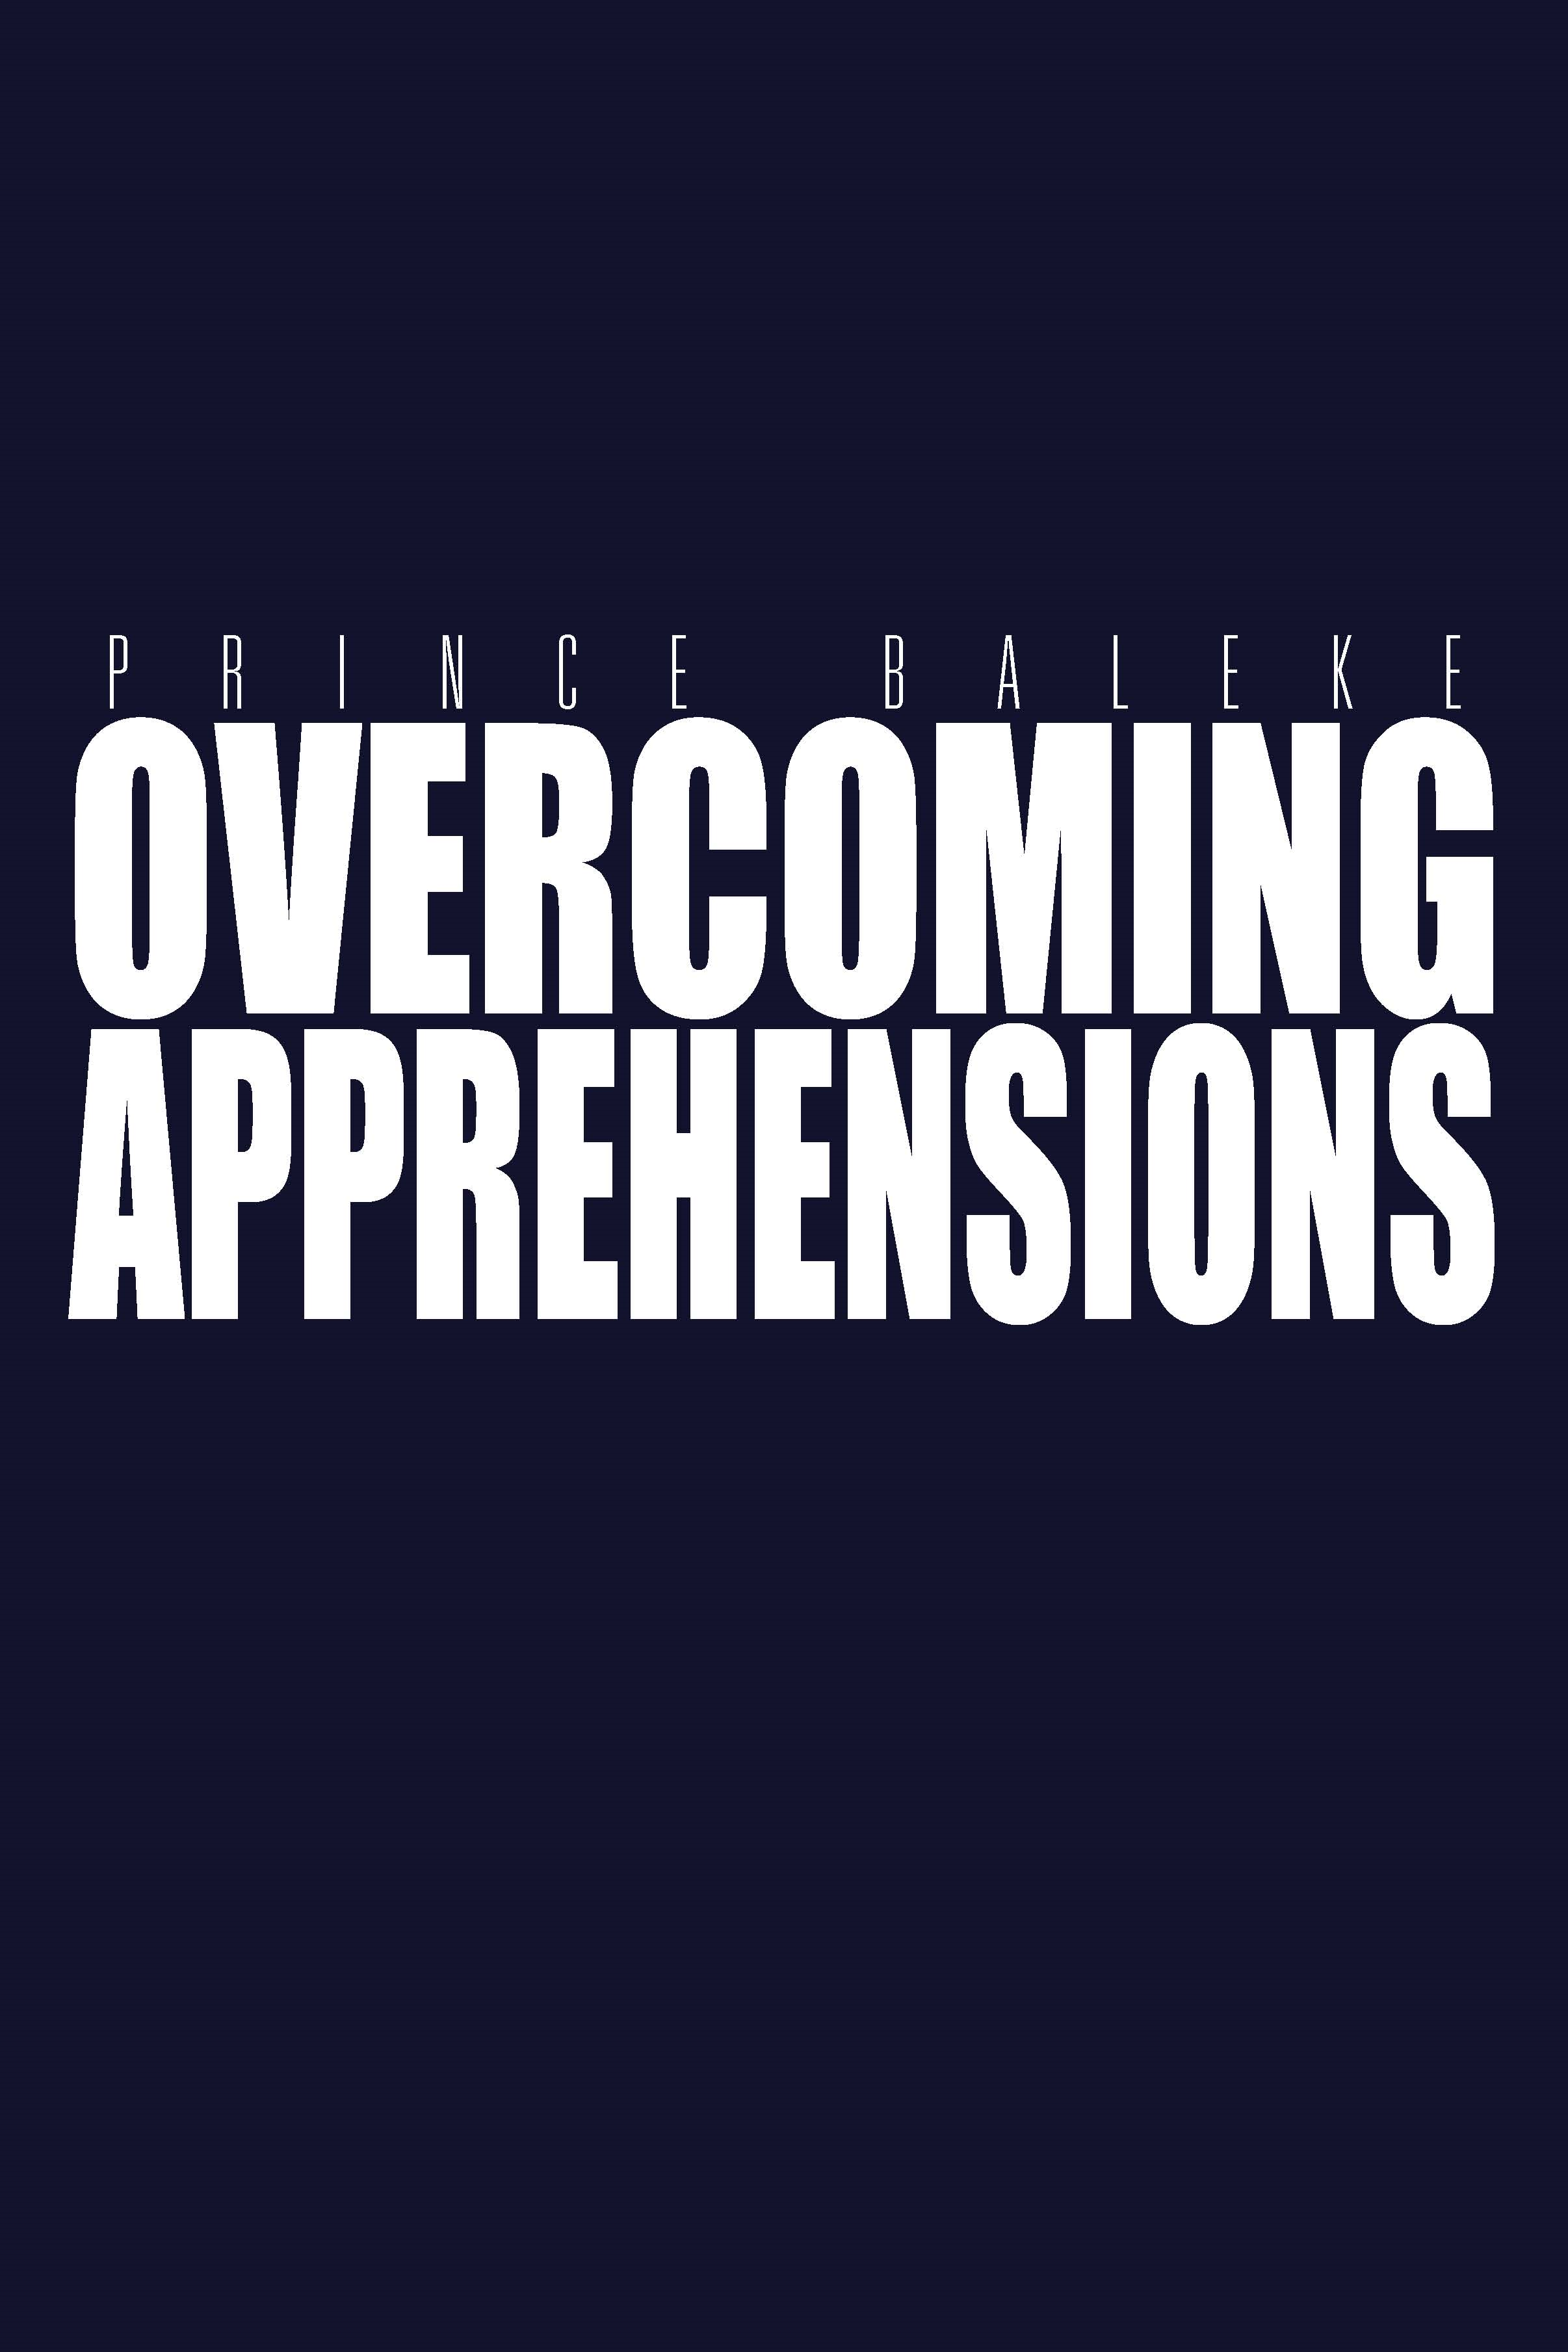 OVERCOMING APPREHENSIONS